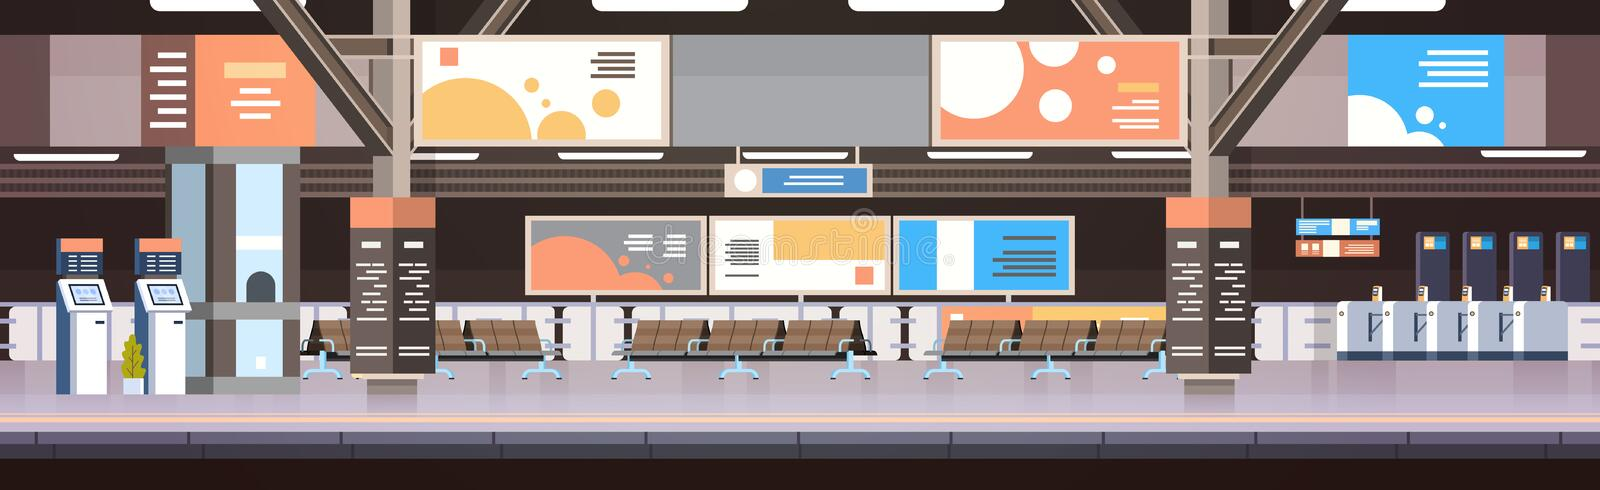 Train Subway Or Railway Station Interior Empty Platform With No Passengers Transport And Transportation Concept. Flat Vector Illustration stock illustration